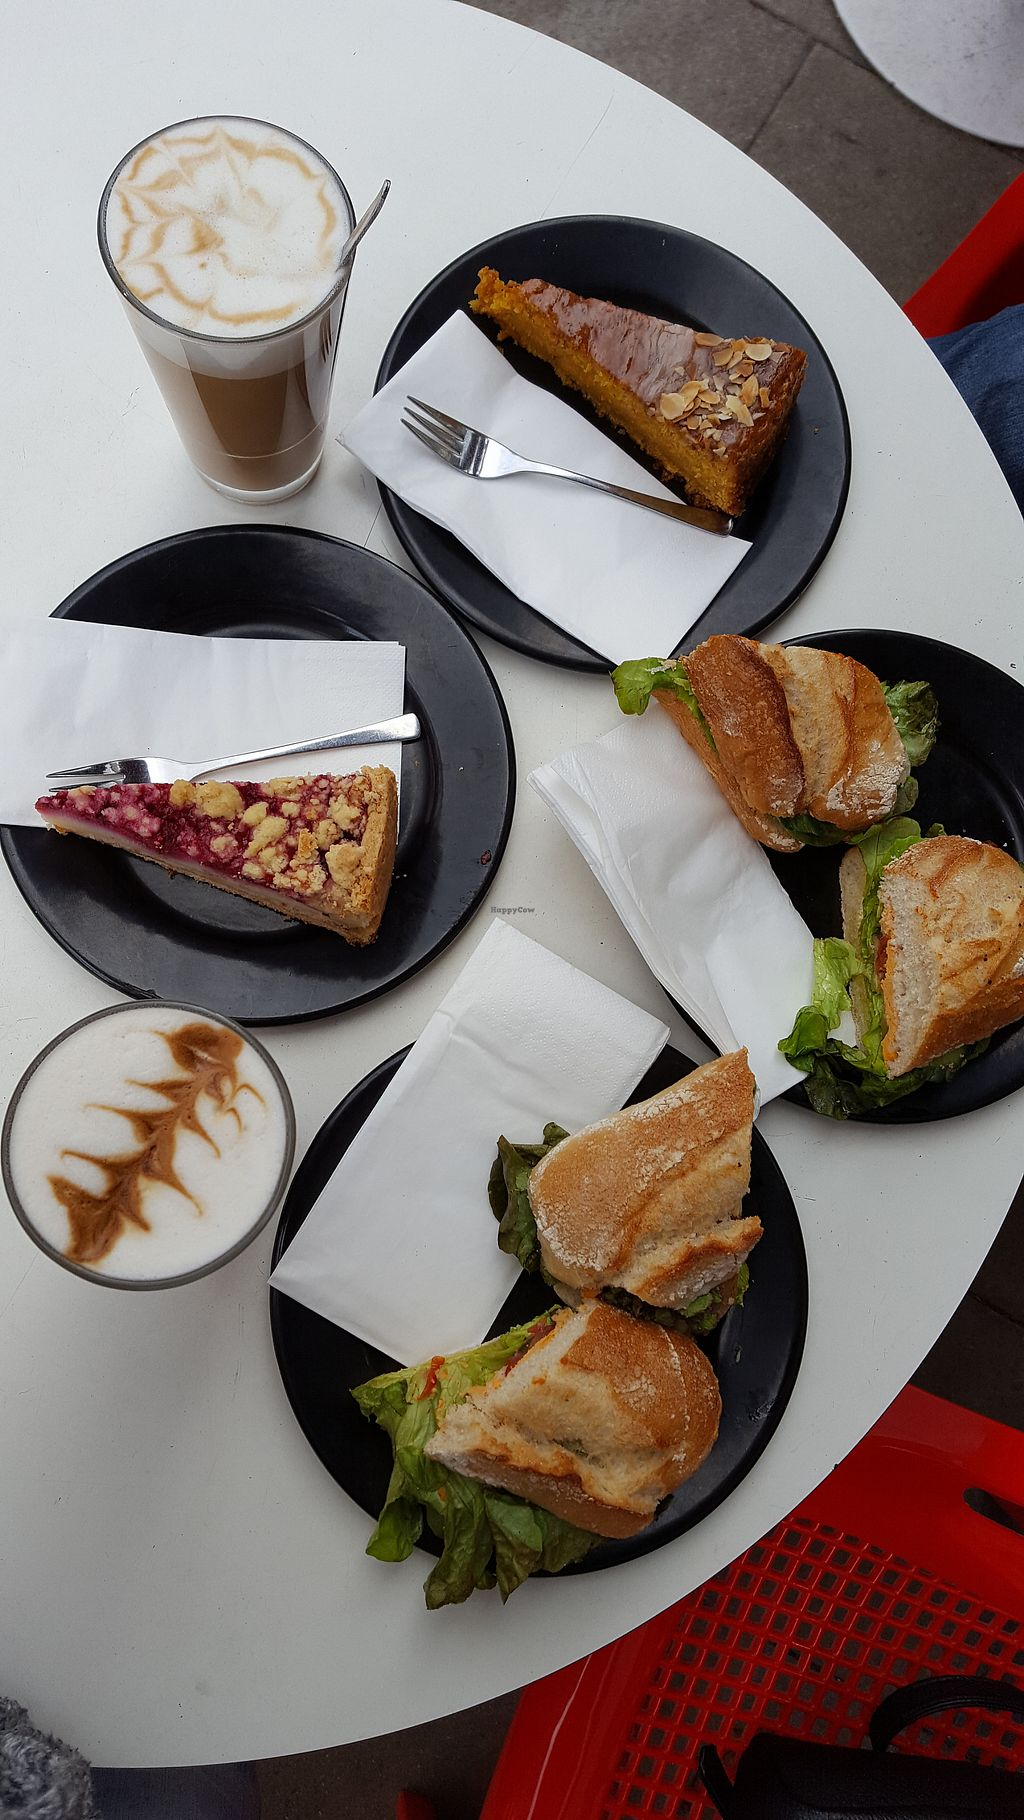 """Photo of Lost Weekend  by <a href=""""/members/profile/Seiashun"""">Seiashun</a> <br/>Carrot cake, berry cake, cafe lattes, hummus sandwich, antipasti sandwich <br/> October 22, 2017  - <a href='/contact/abuse/image/56426/317768'>Report</a>"""